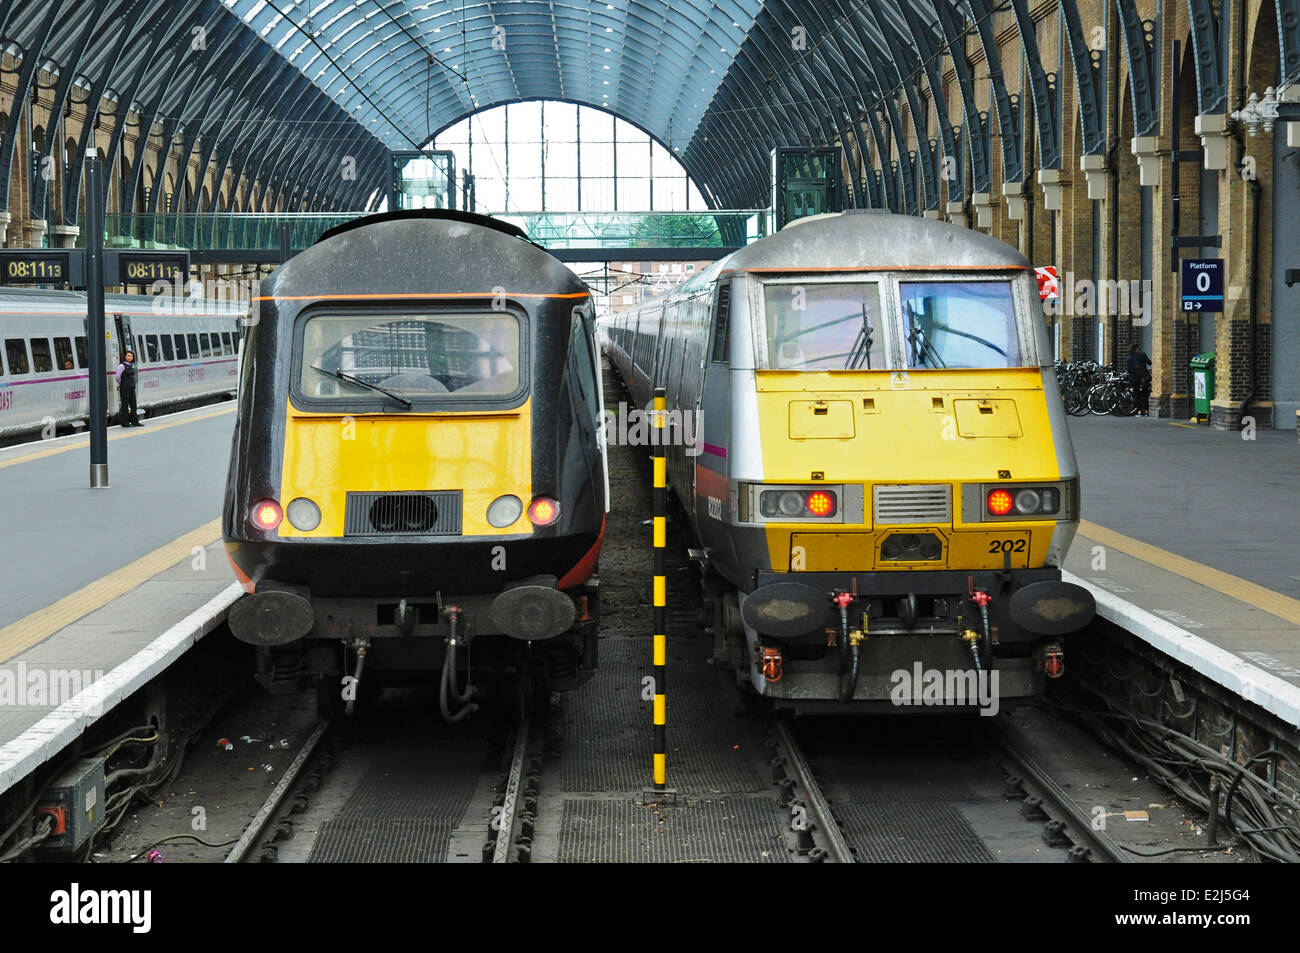 Inter City 125 diesel and 225 electric trains side by side at King's Cross railway station, London, England, UK Stock Photo